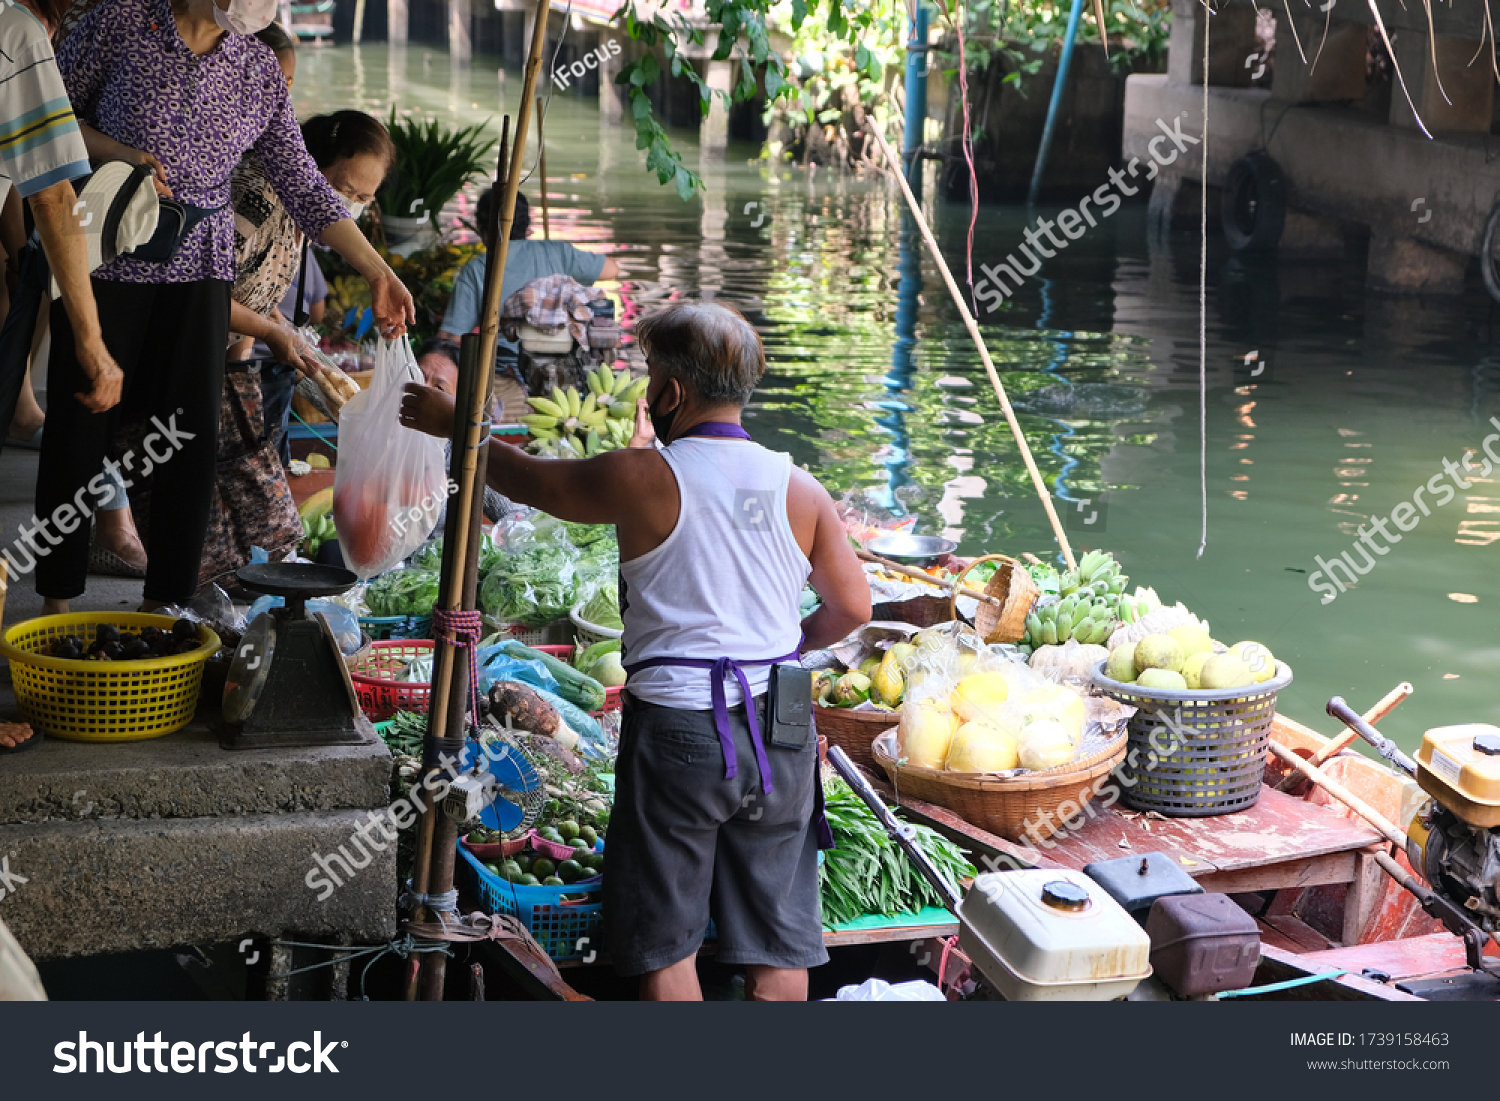 BANGKOK, THAILAND - MAY 23, 2020: People trade at Lat Mayom floating market on May 23, 2020 in Taling Chan district of Thai capital Bangkok